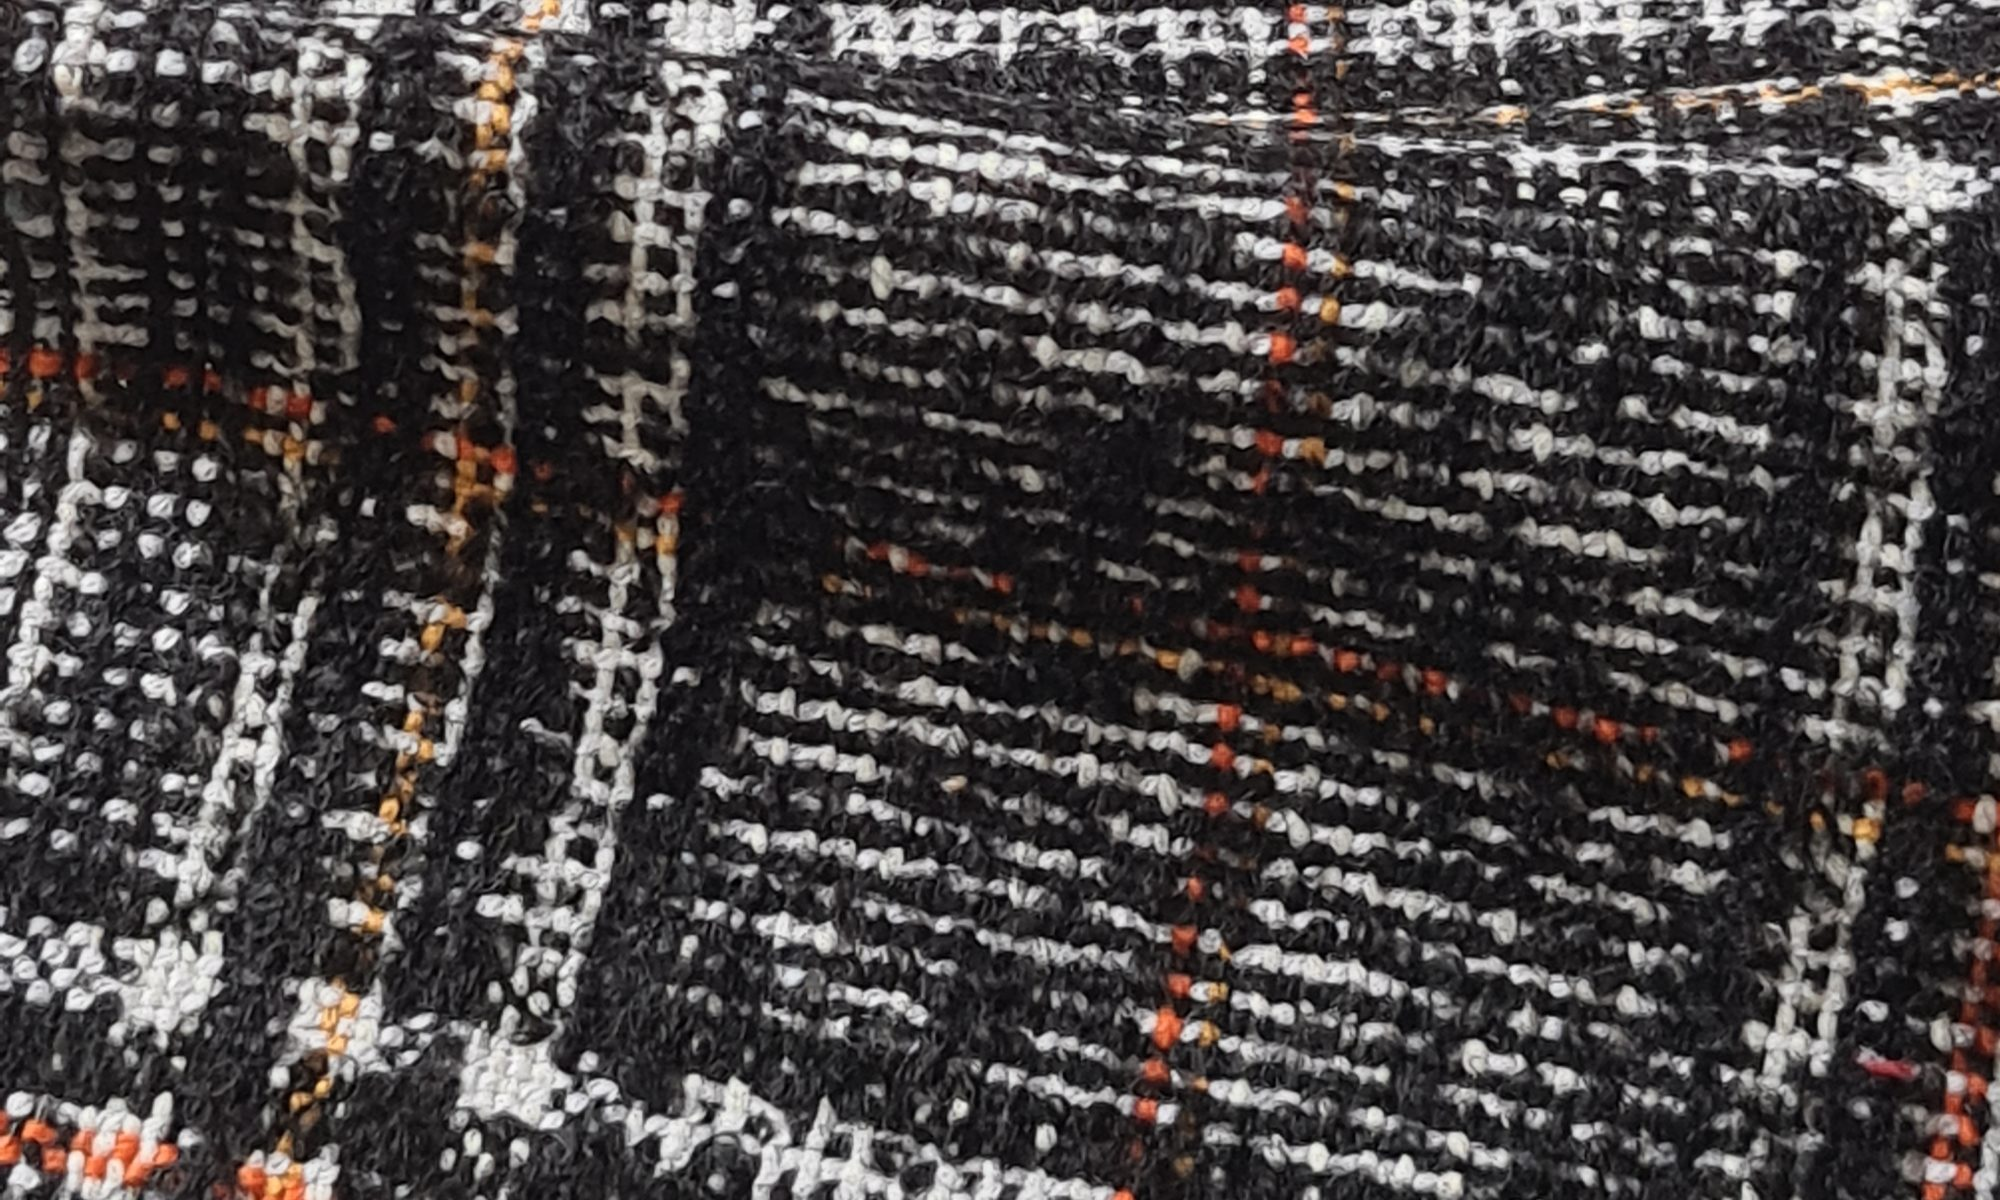 7590 tartan glen plaid black and white coat fabric WIDTH cm142 WEIGHT gr510 - gr359 square meter - COMPOSITION 70 wool 20 alpaca 5 cotton 5 others - 420mts